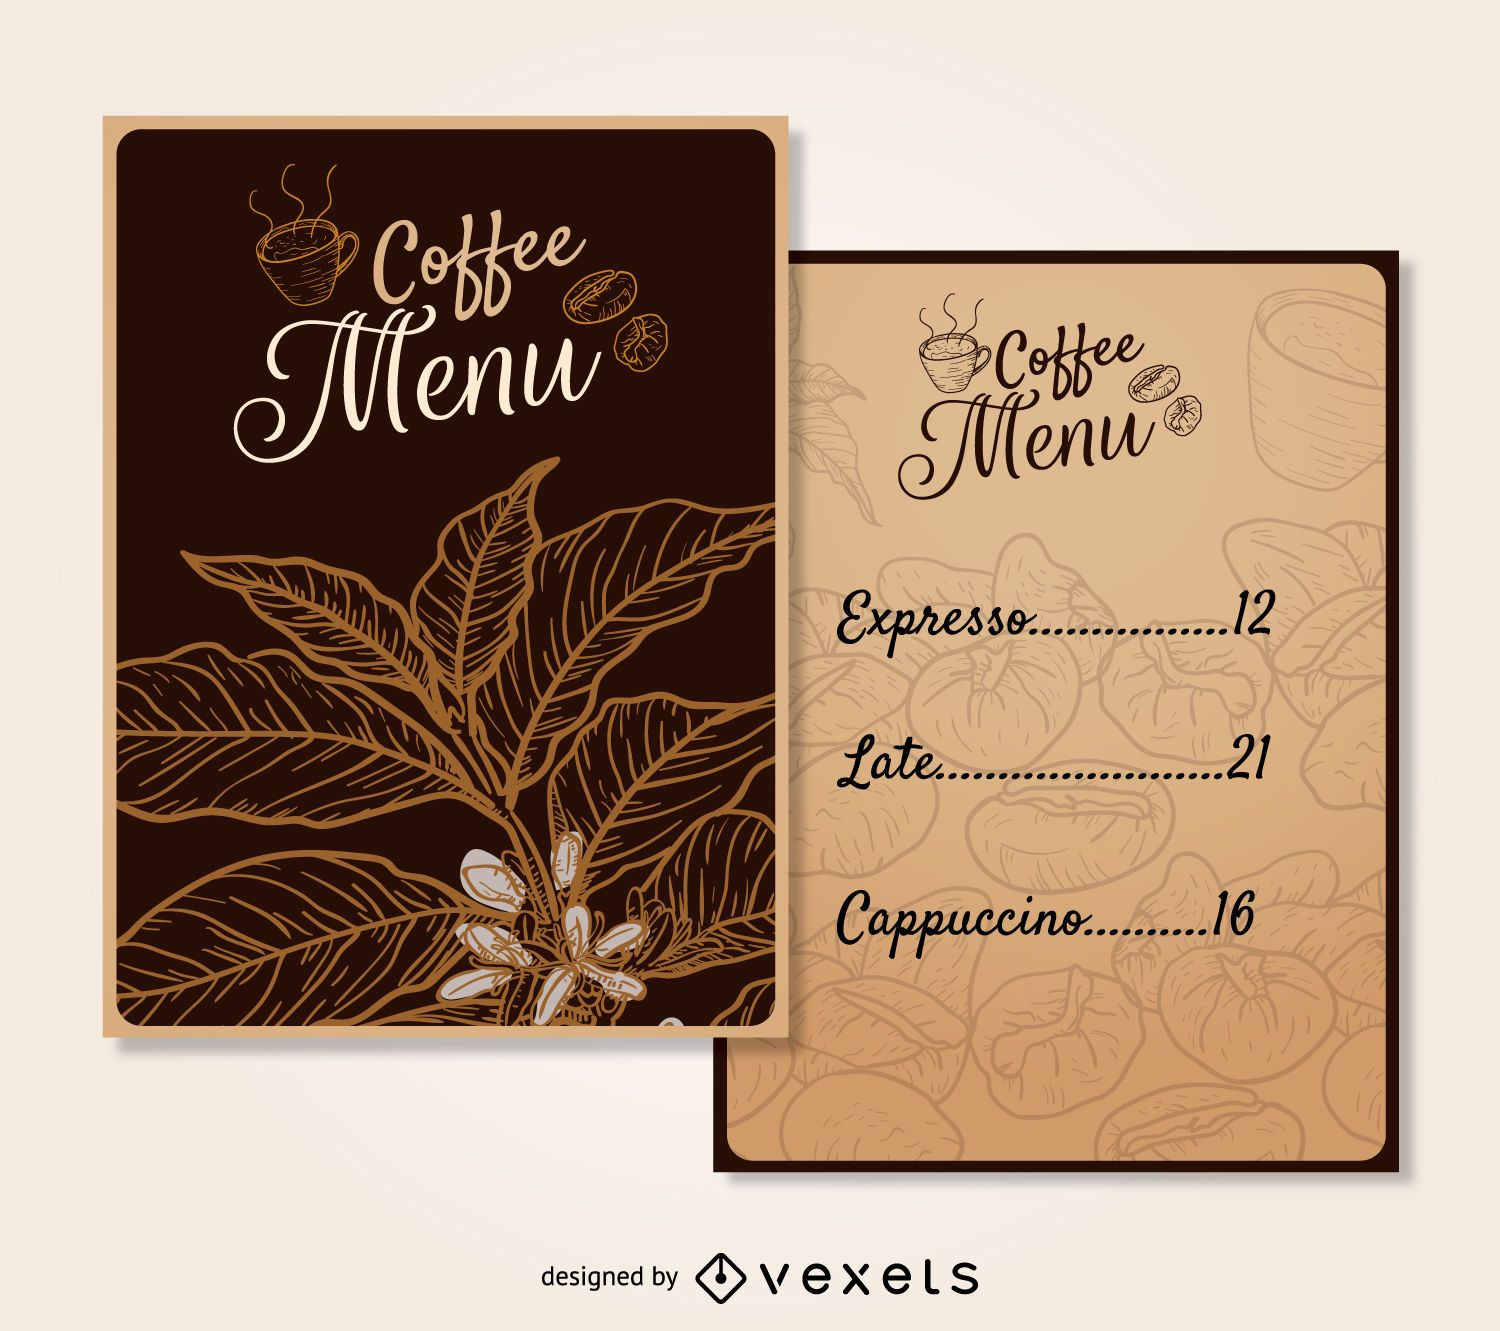 Coffee Menu Template Download Large Image 1500x1331px License User